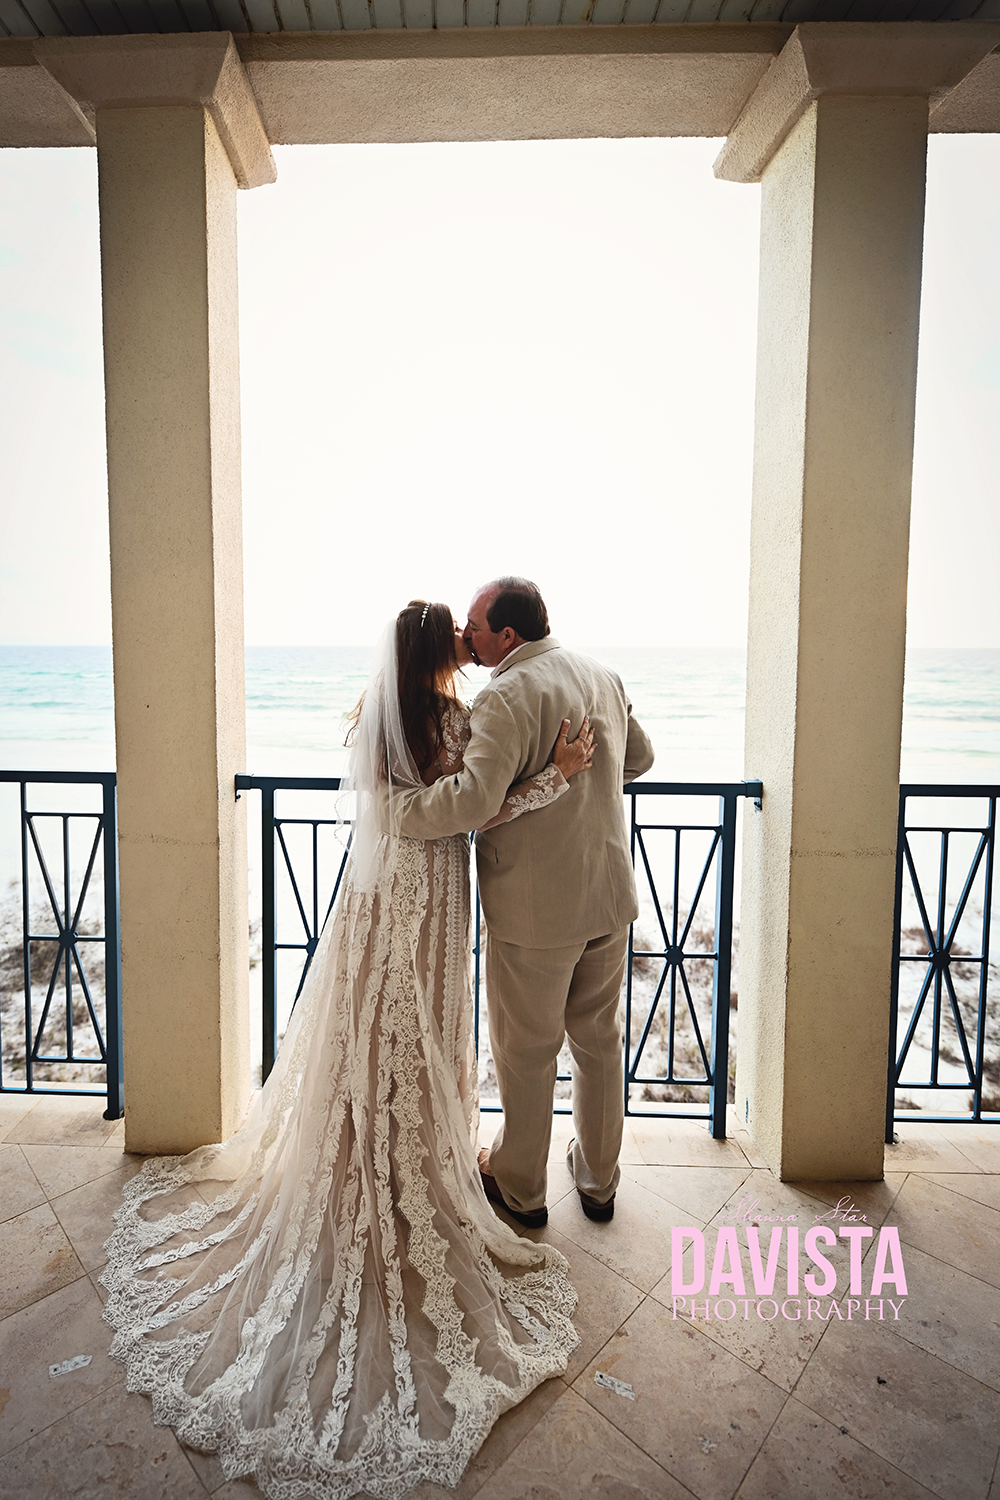 Panama City beach wedding